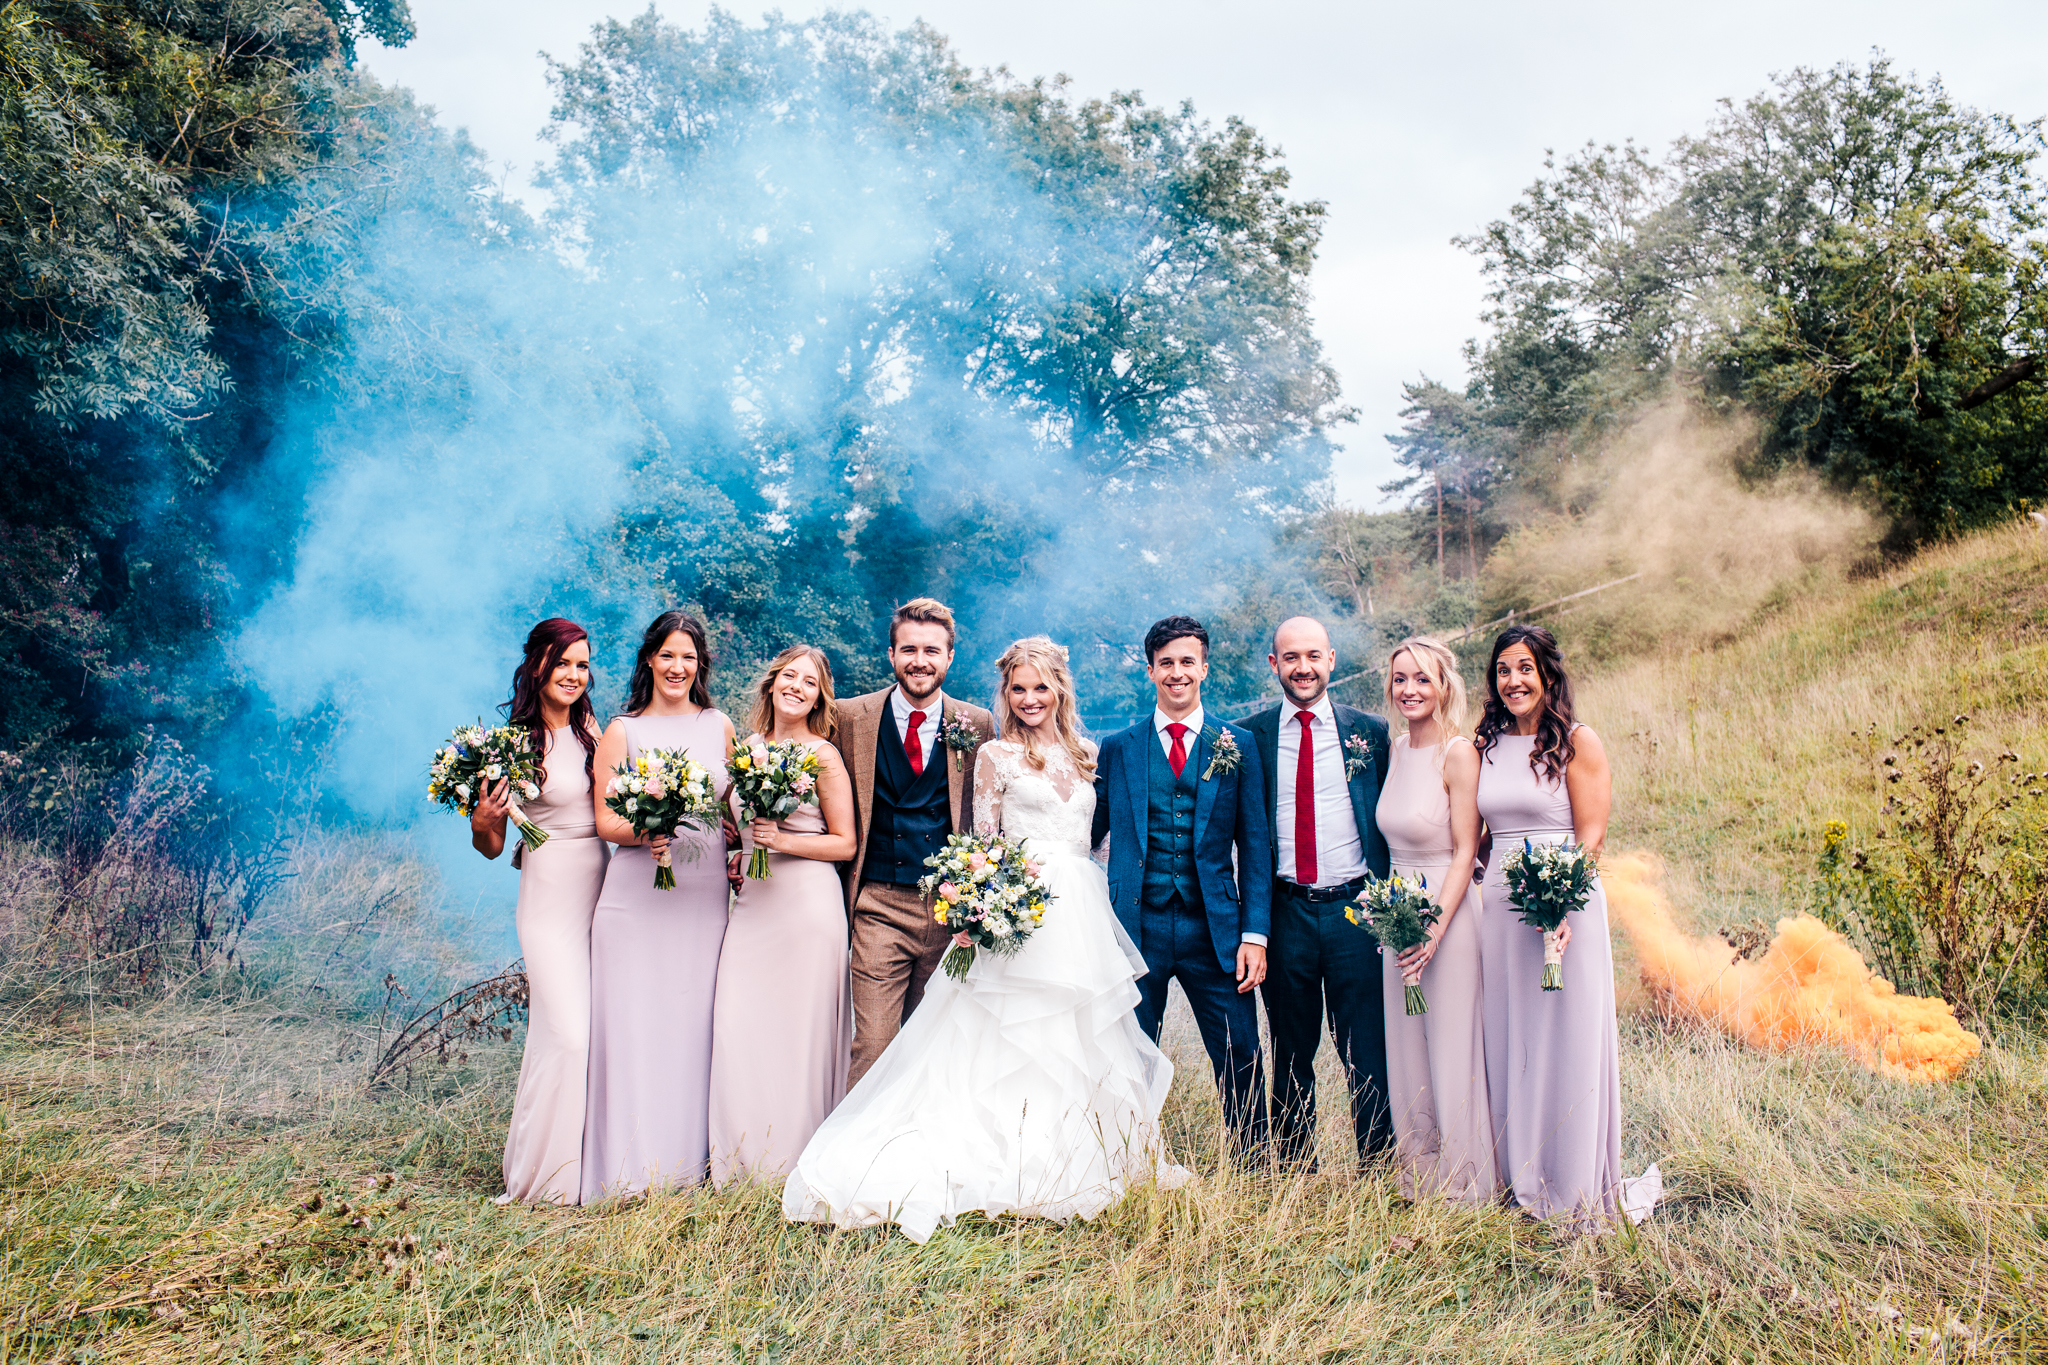 smoke bomb field photo with epic wedding party and Hayley Paige dress